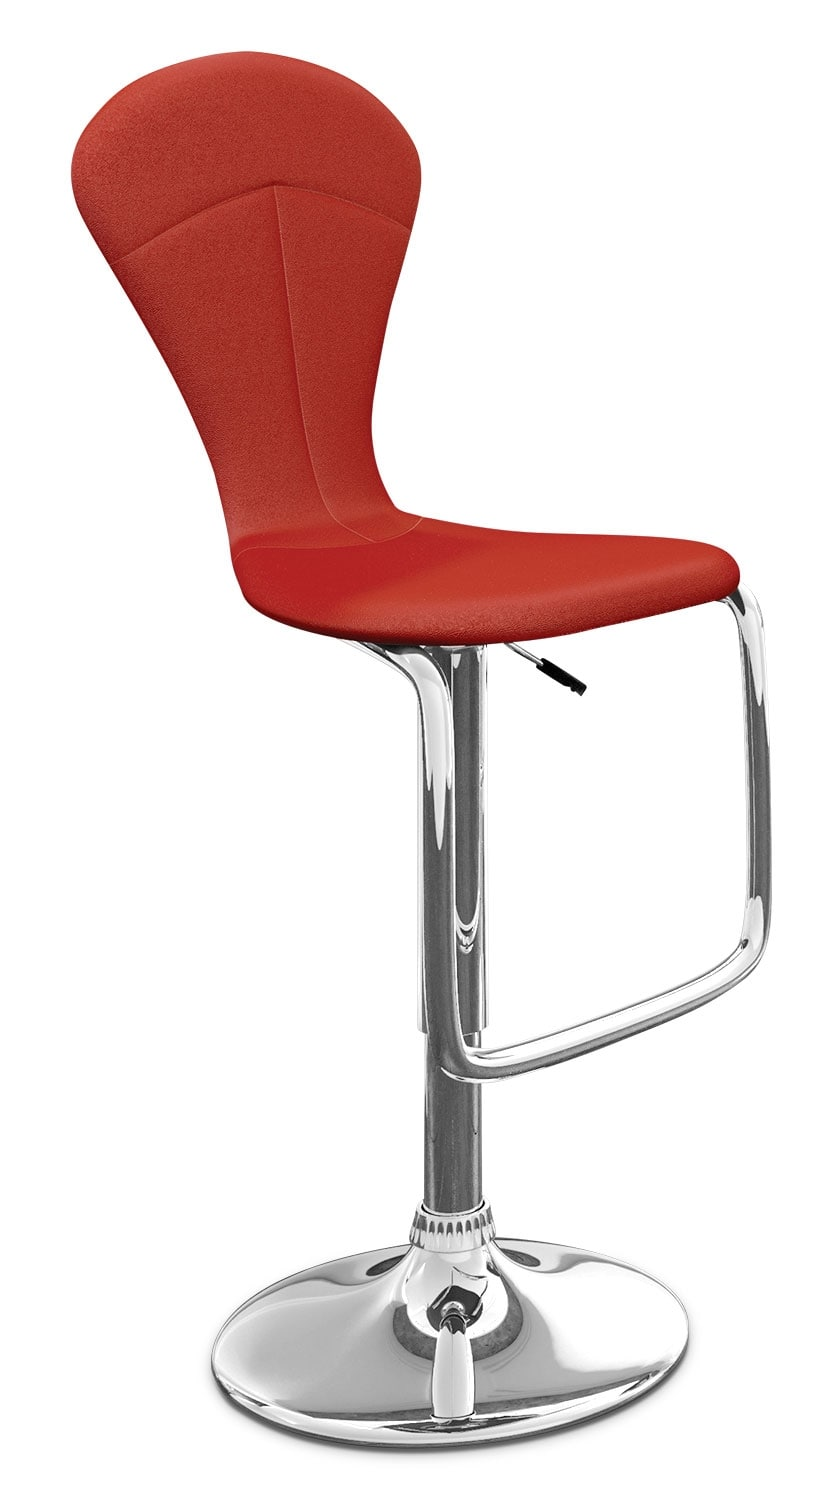 CorLiving Tapered Full-Back Adjustable Bar Stool - Red